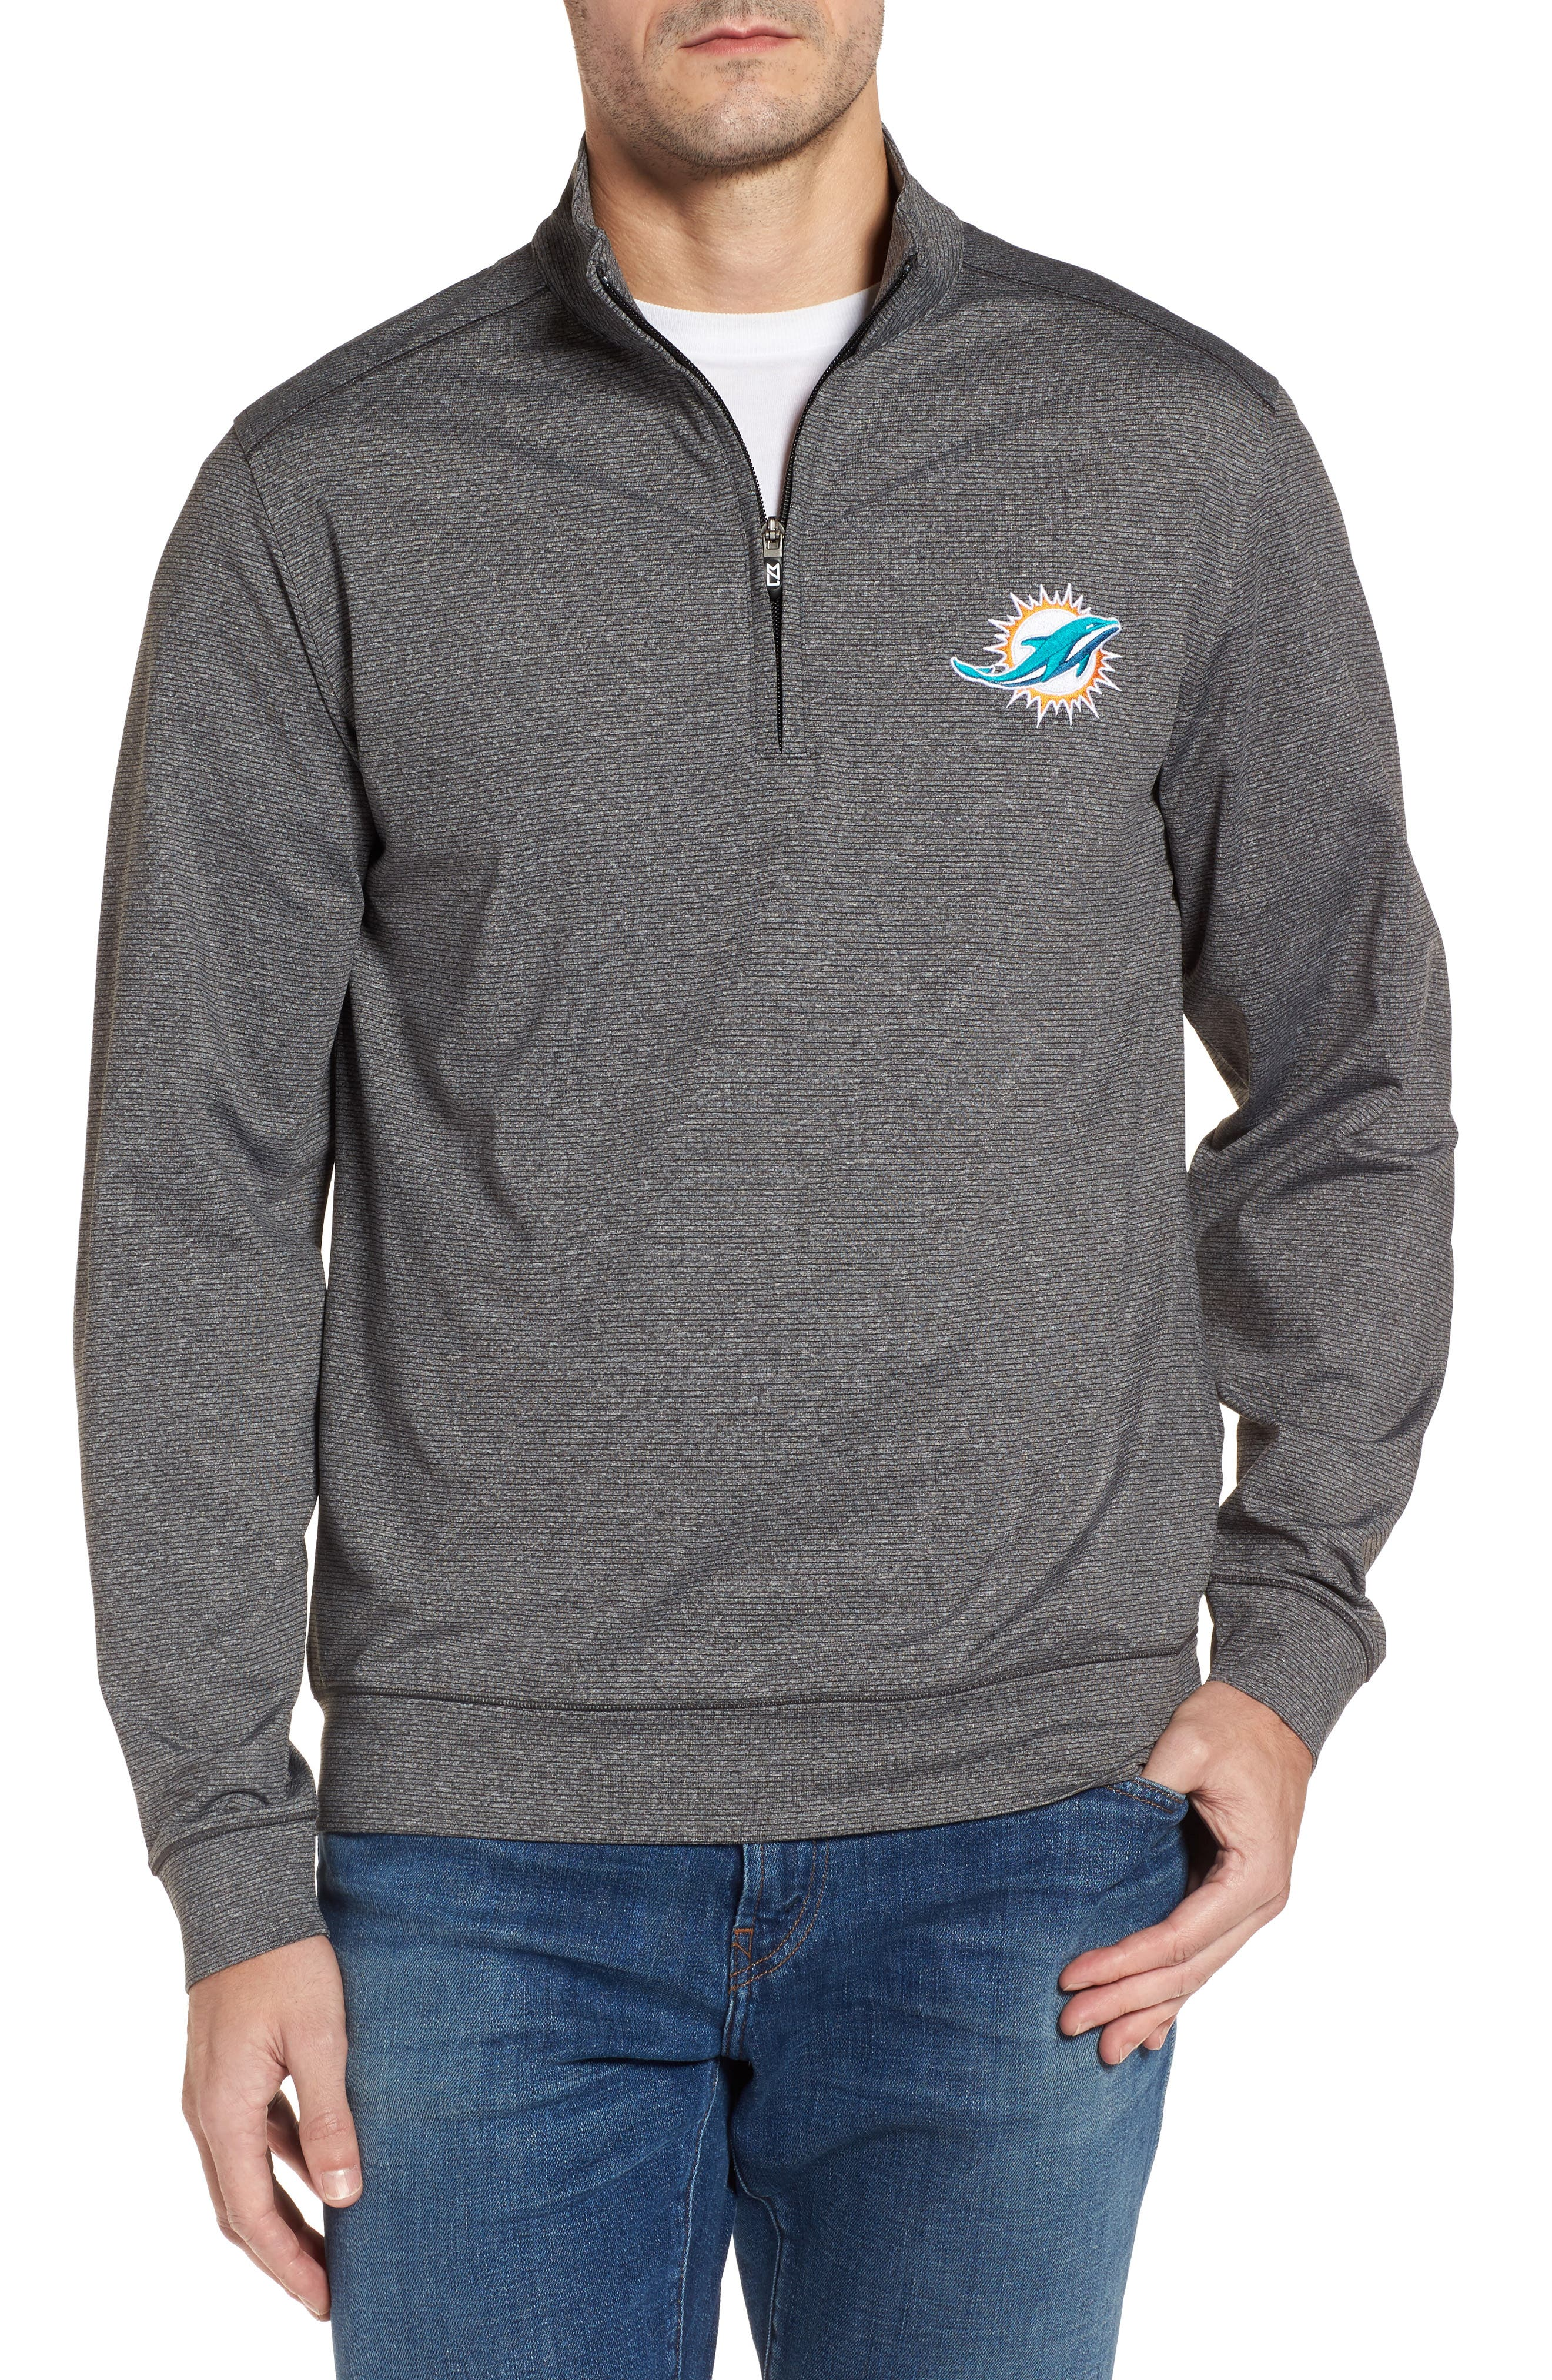 Shoreline - Miami Dolphins Half Zip Pullover,                             Main thumbnail 1, color,                             Charcoal Heather